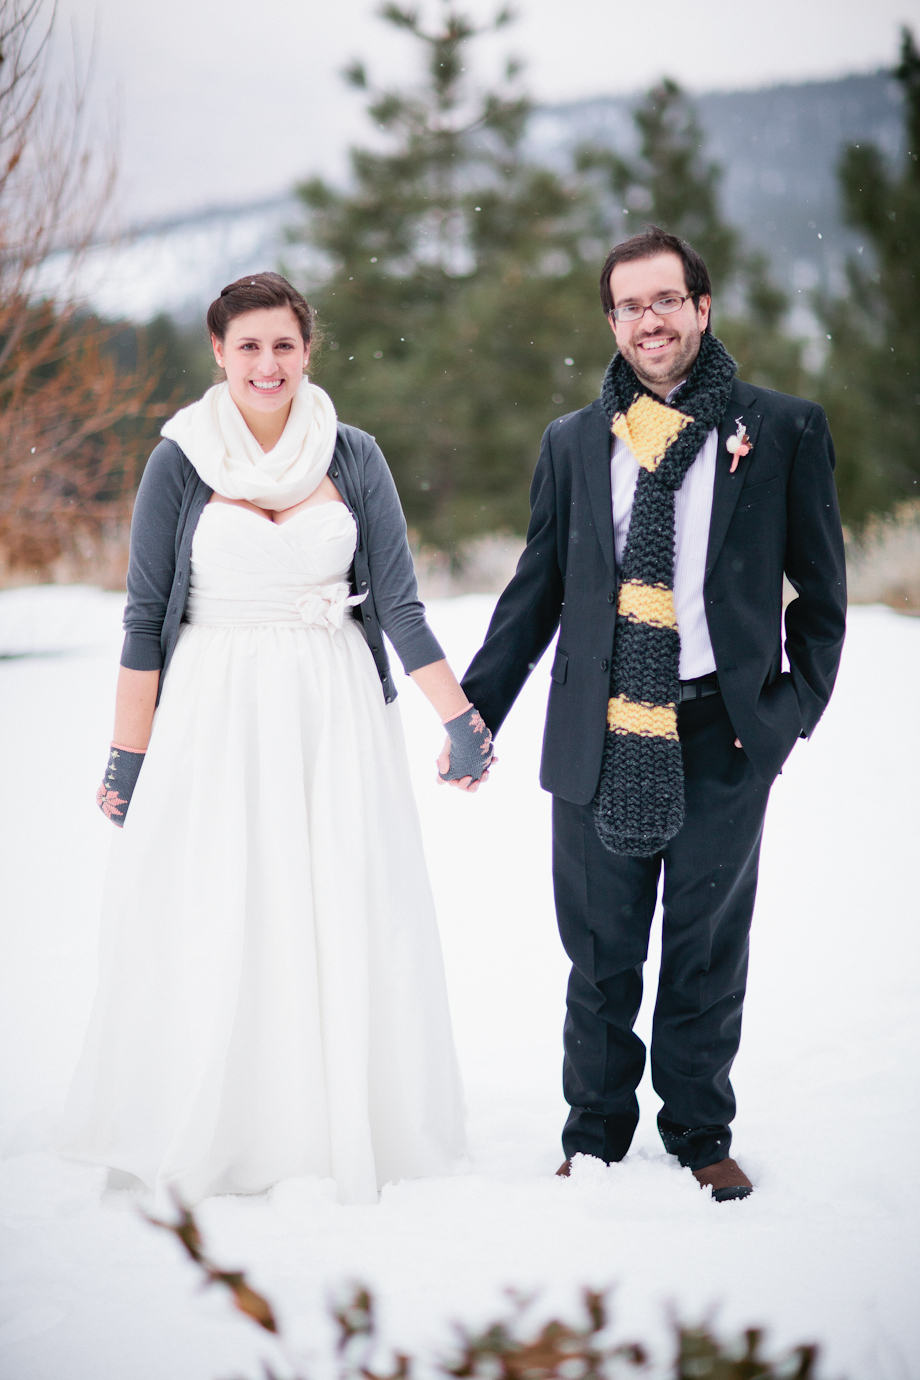 snowy winter wedding photographer